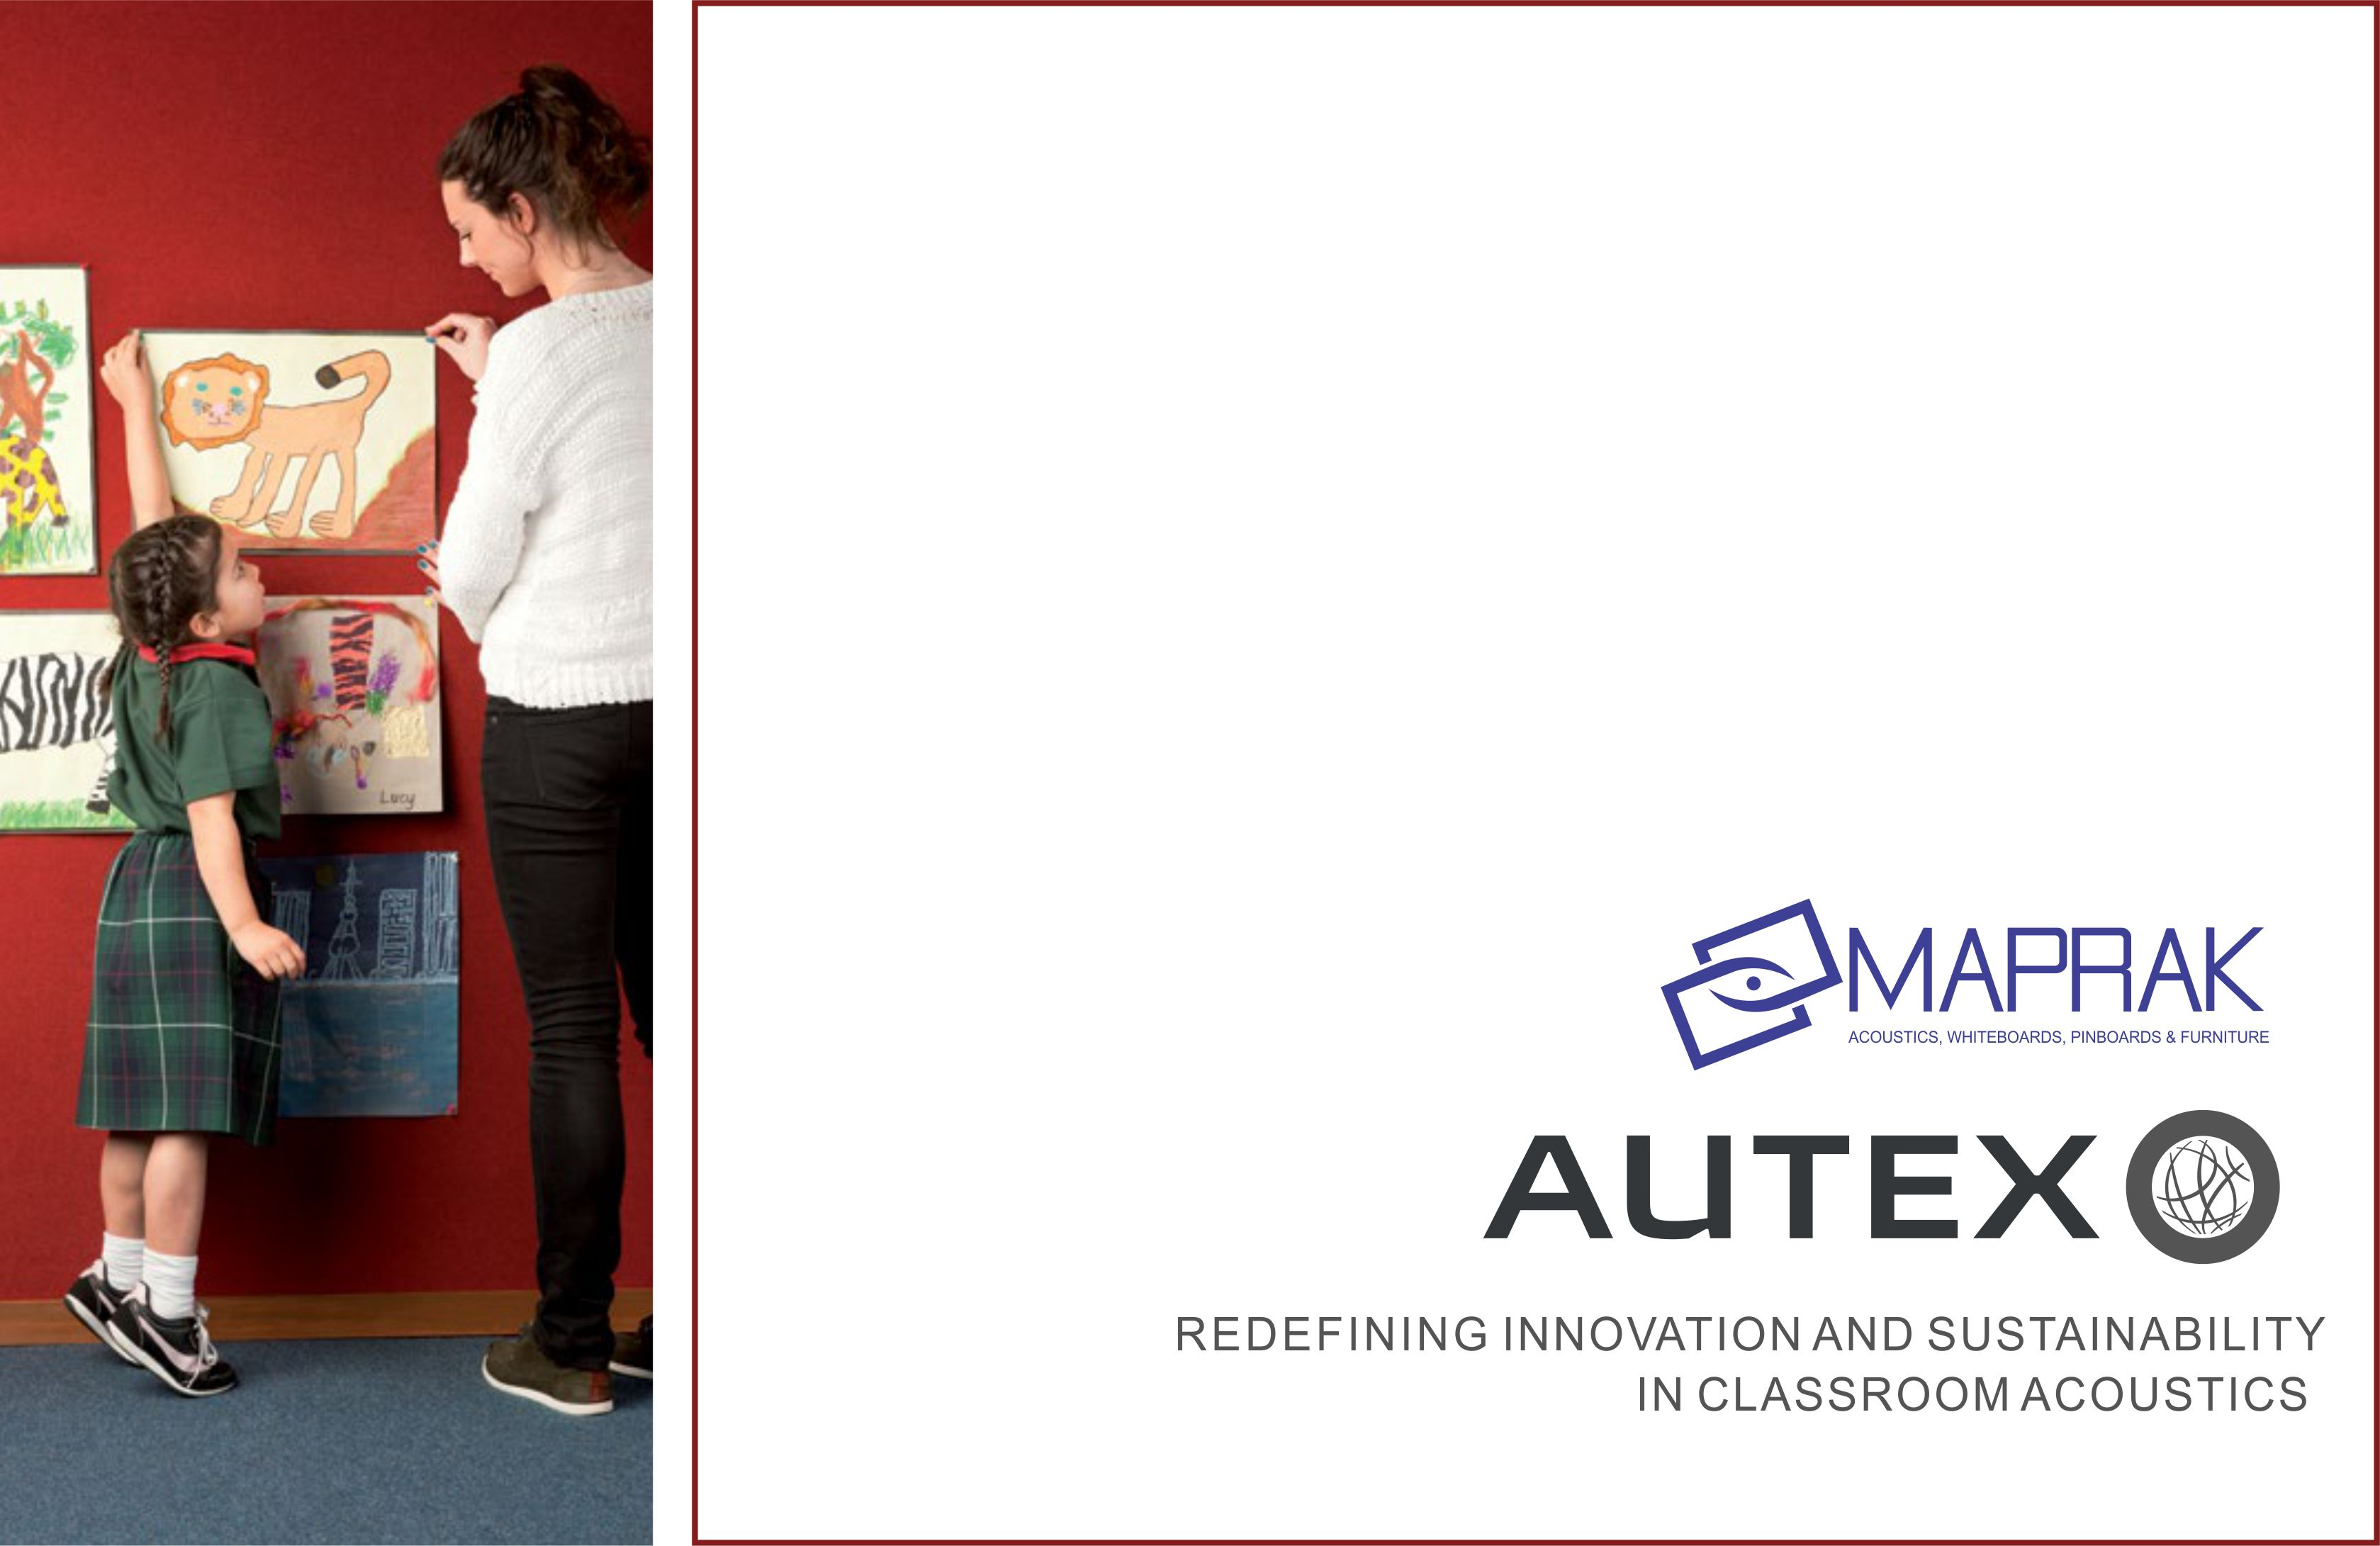 AUTEX COMPOSITION FOR CLASSROOMS